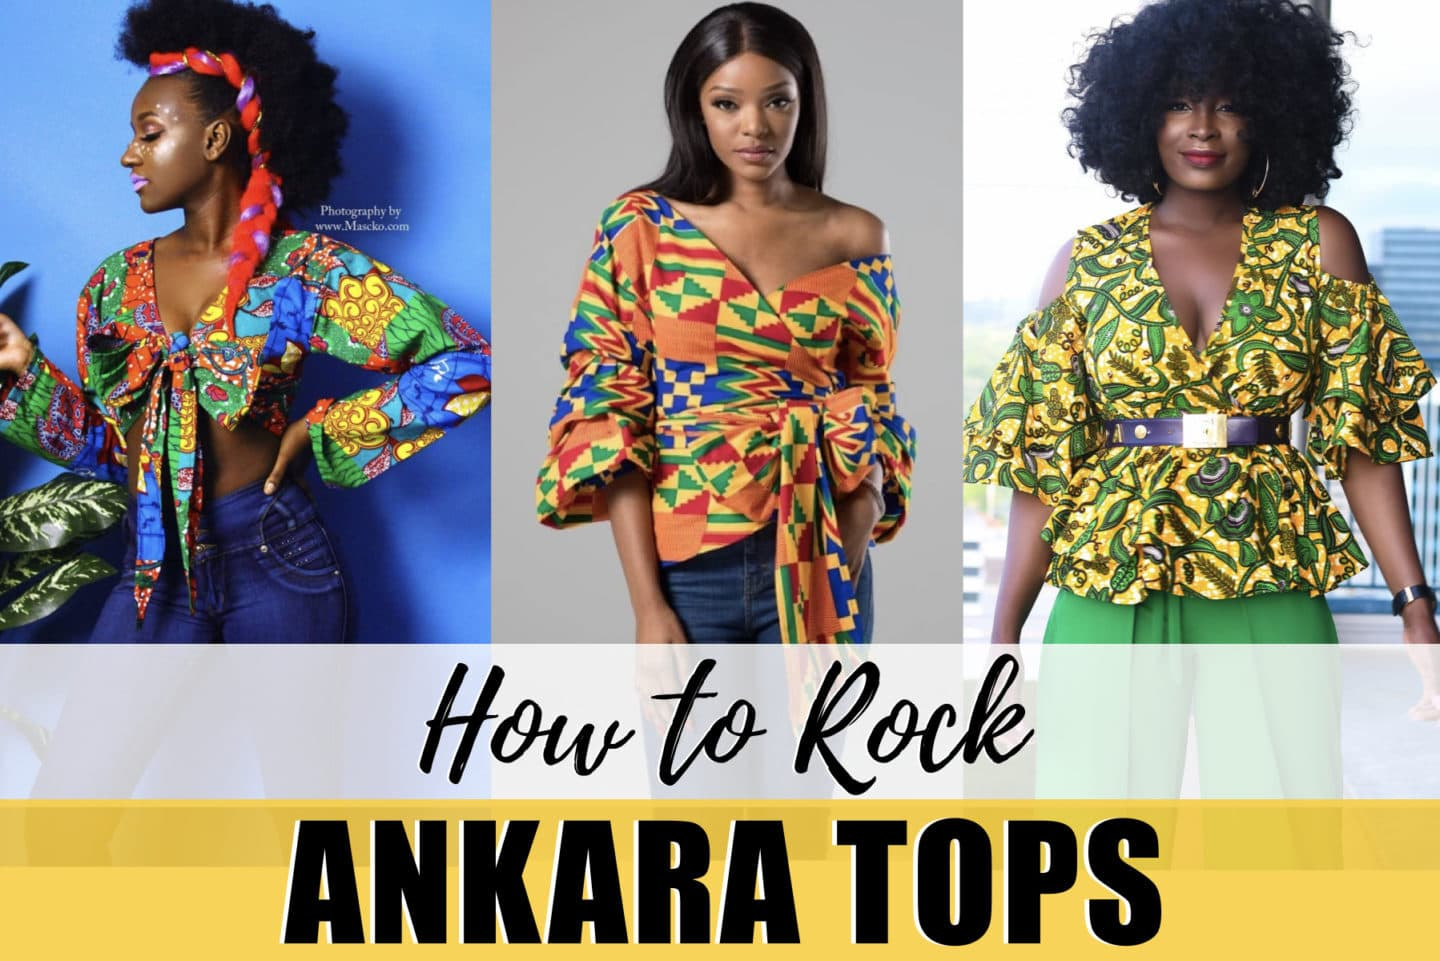 20 best ankara tops for ladies every African print lover should have in their wardrobe. From affordable ankara peplum tops, and African print crop tops to off the shoulder tops and even more stunning ankara top styles to rock this year. And details on where to African print clothes online for less.